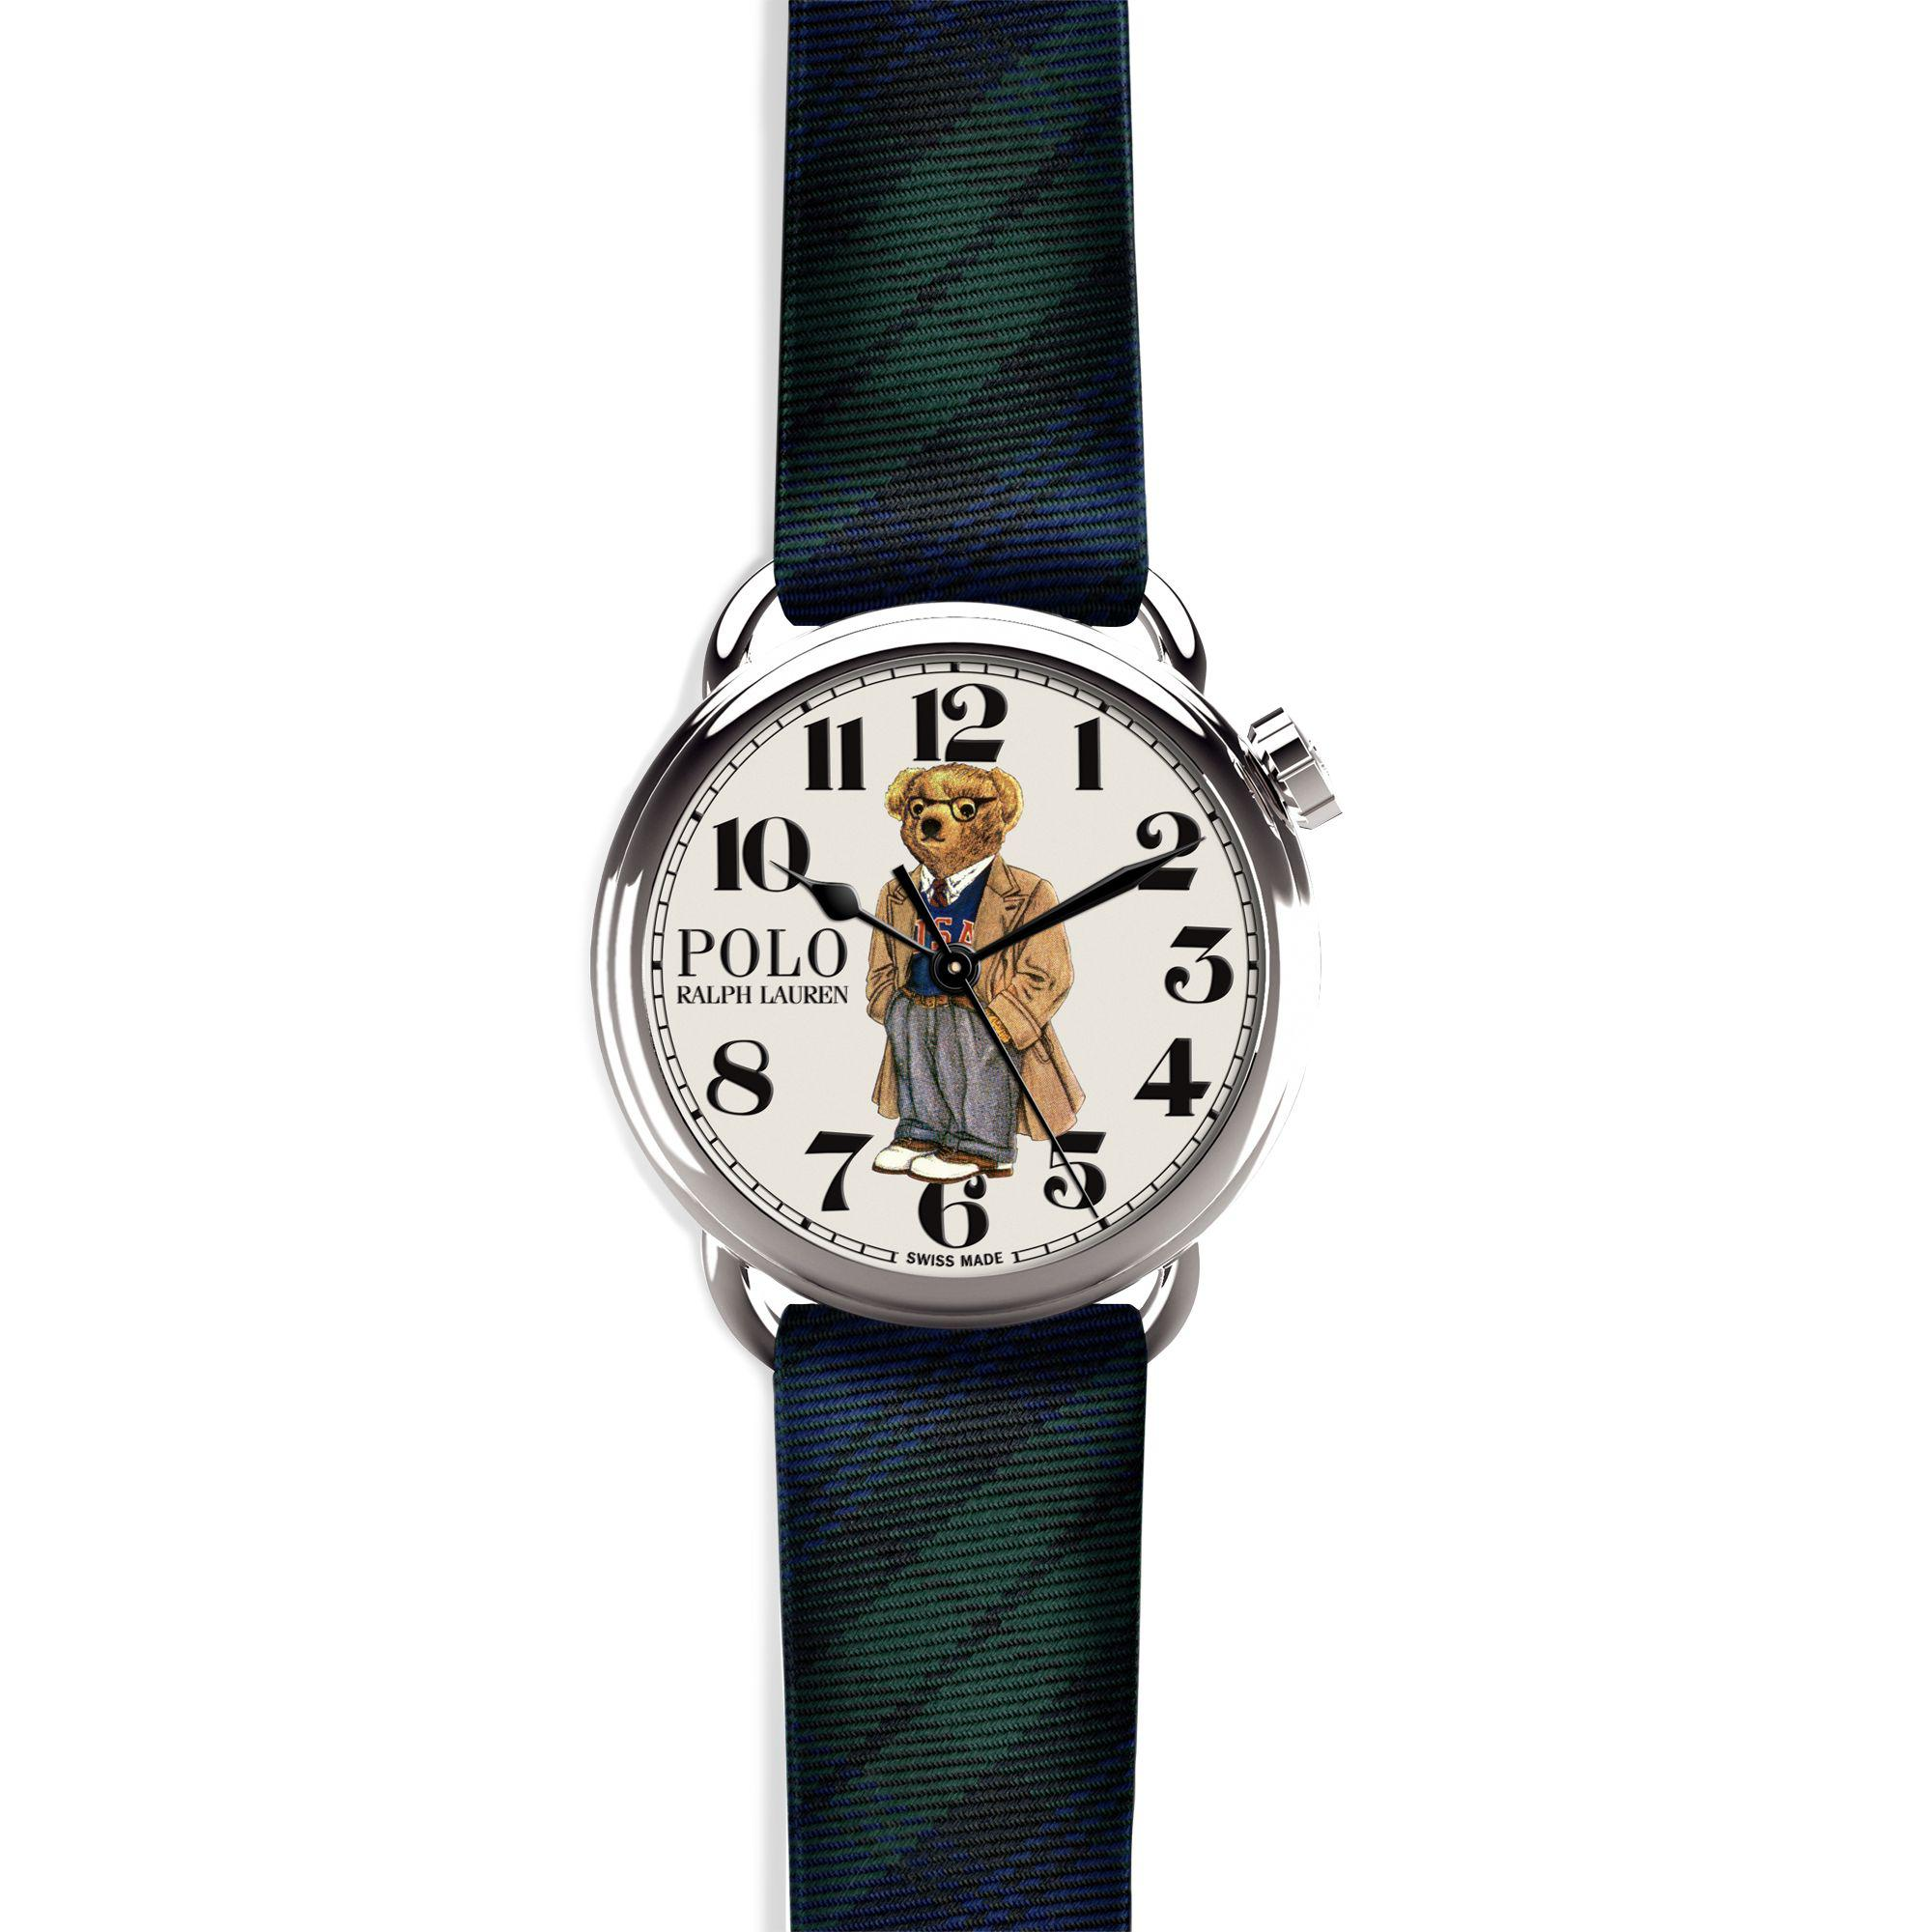 Polo Ralph Lauren Leather Polo Spectator Bear Watch for Men